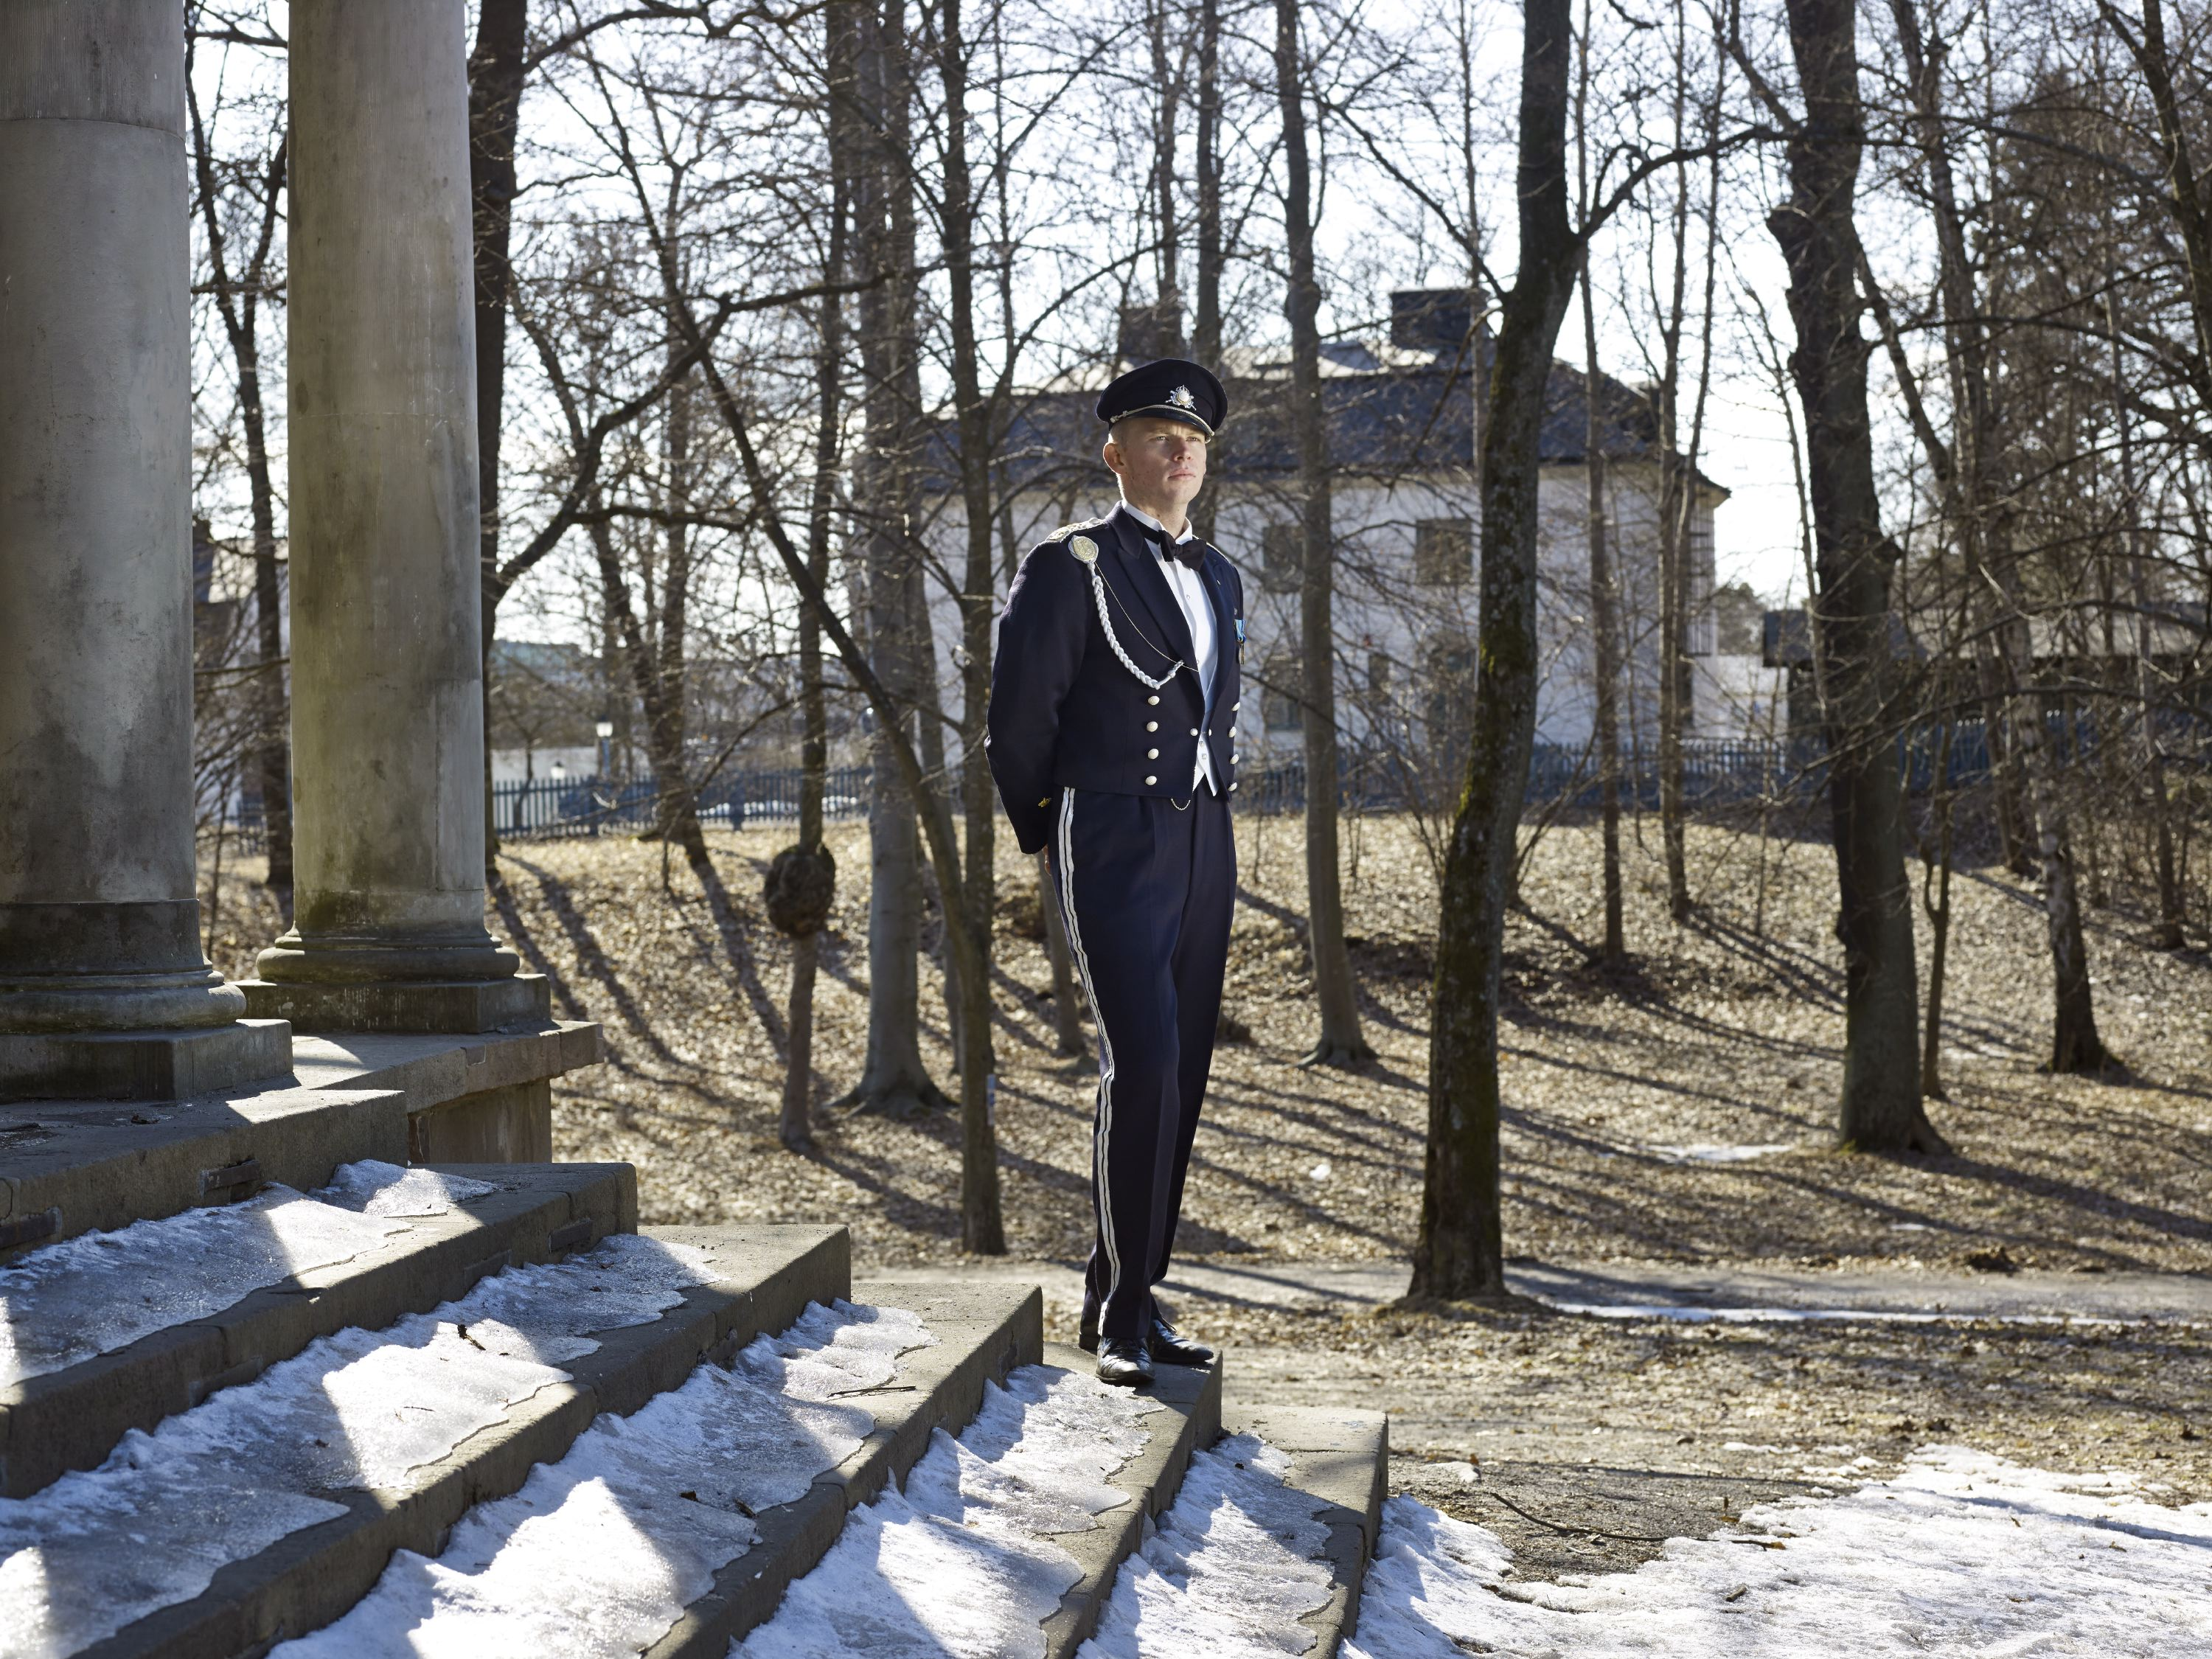 A cadet in front the  temple of Diana  located in the Academy park, Karlberg Military Academy, Stockholm, April 9, 2013.